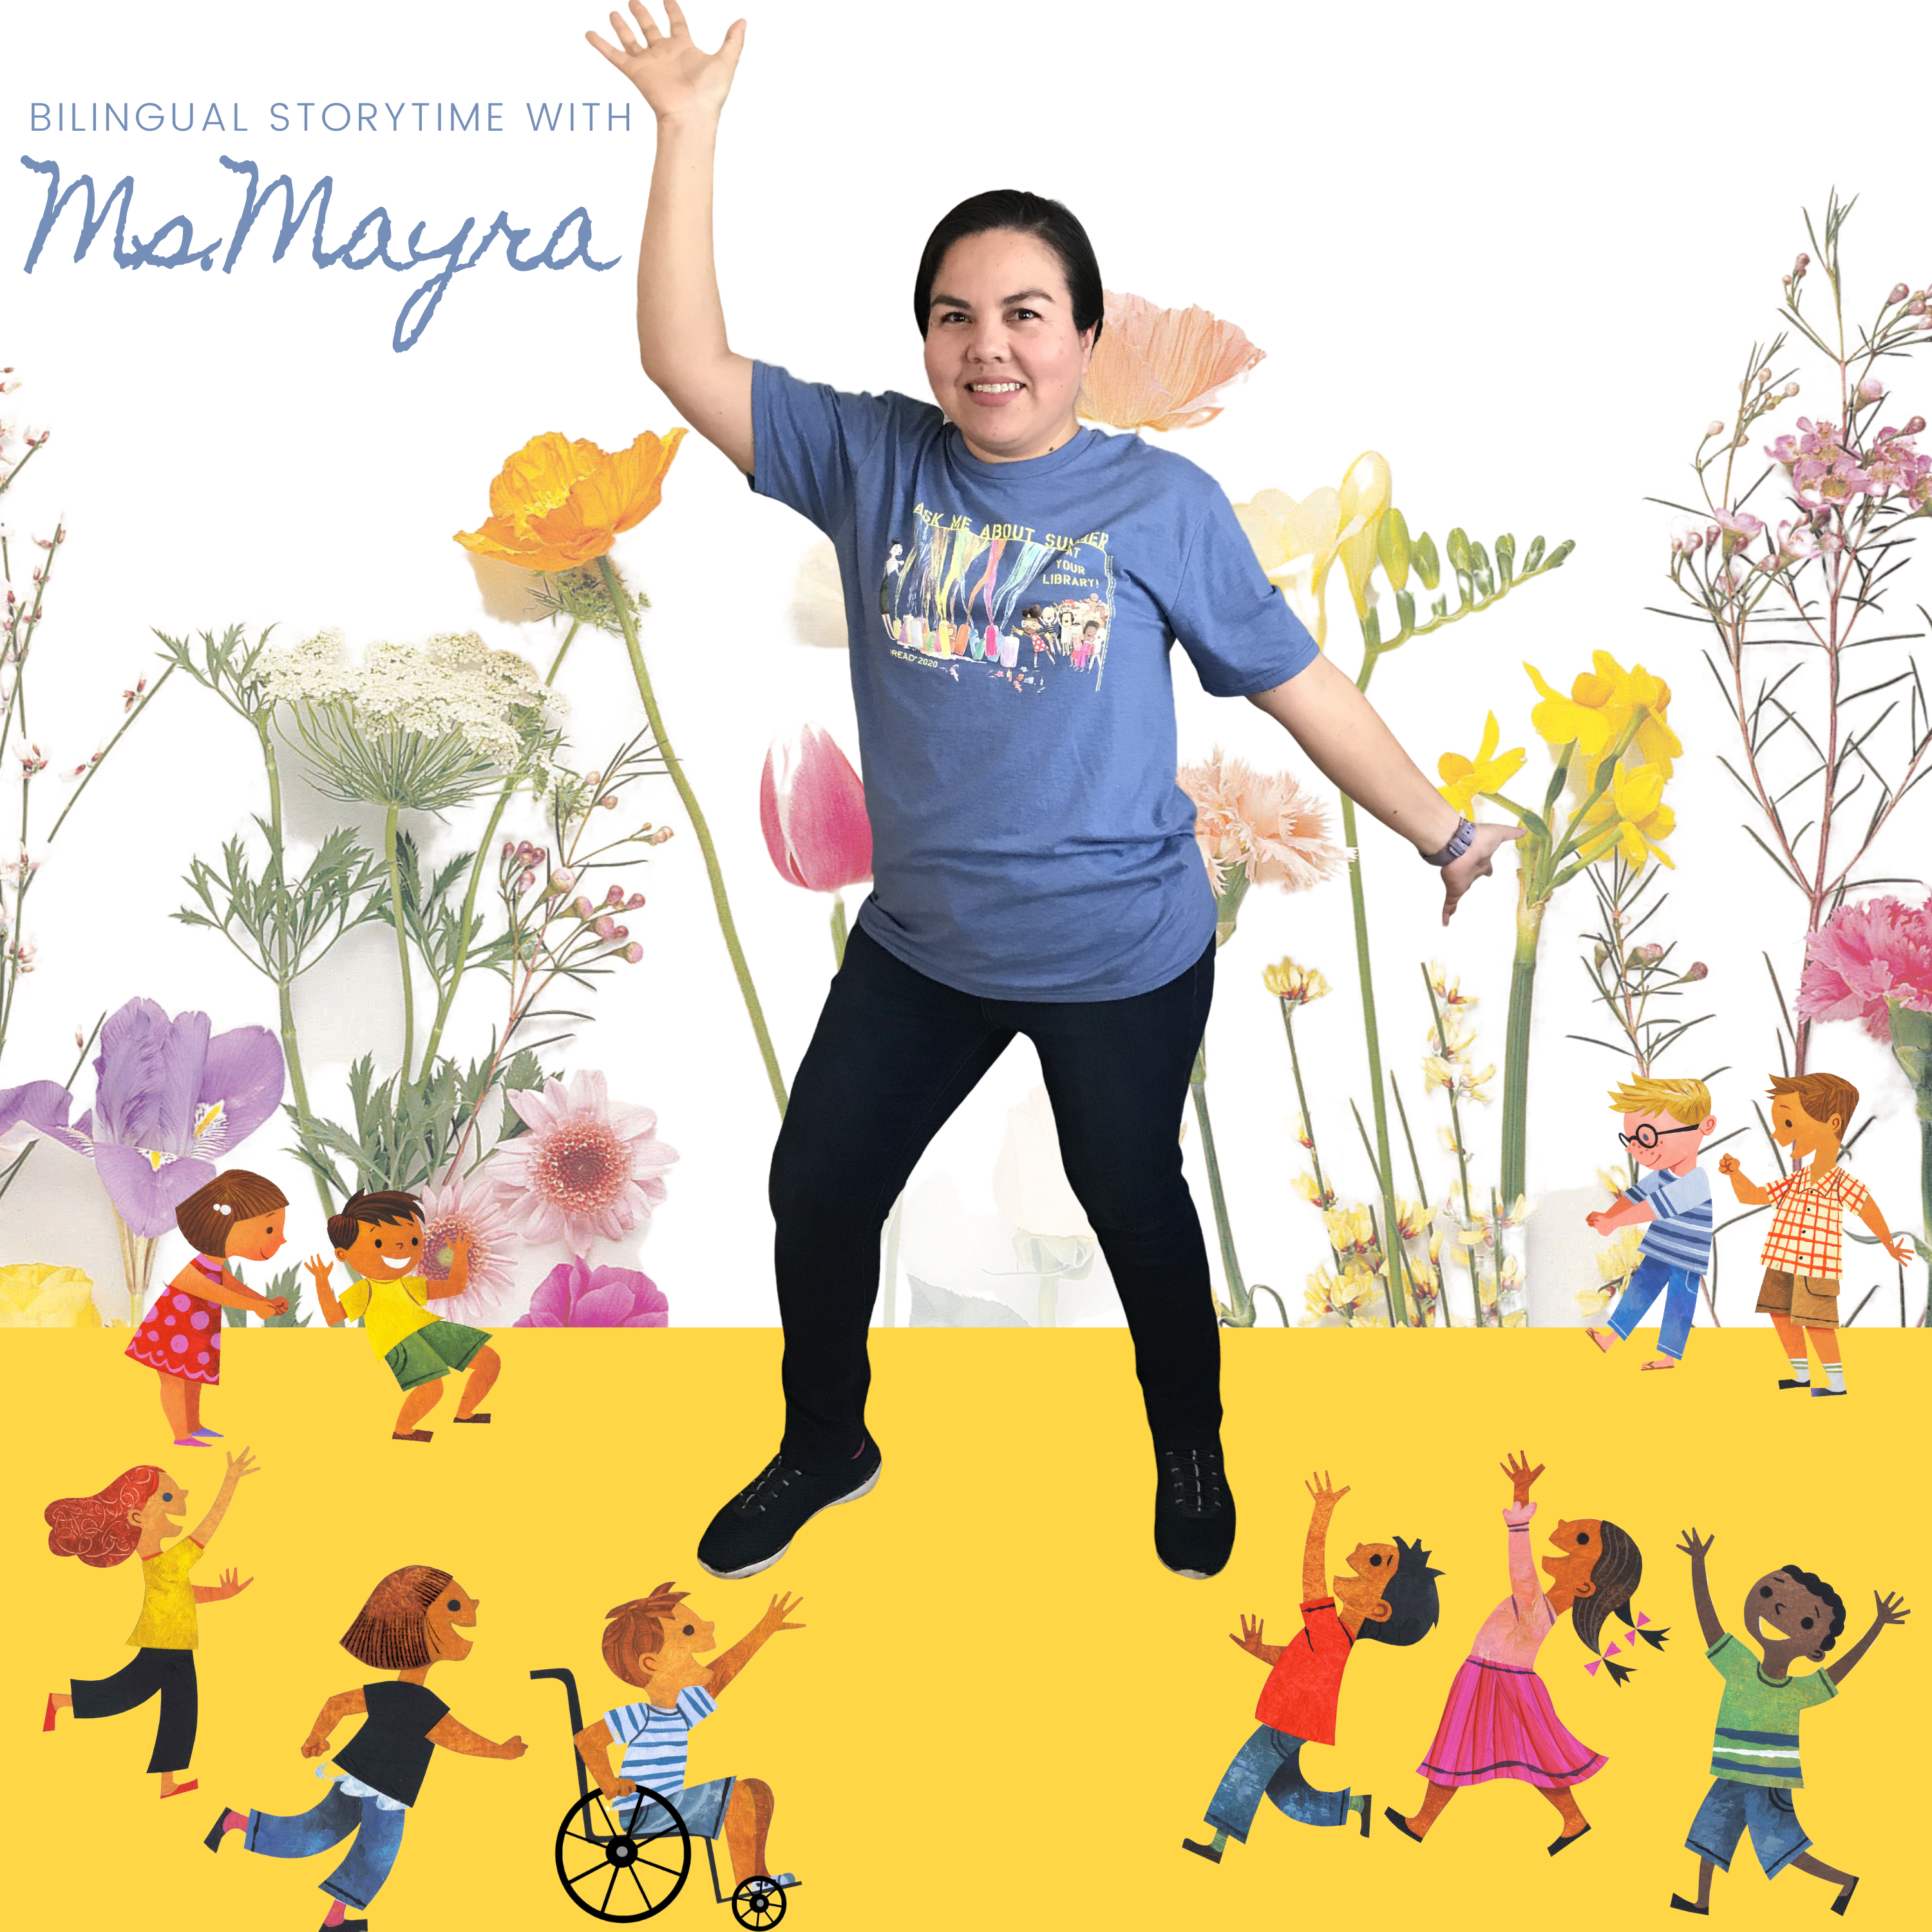 image shows woman standing and smiling amidst a computerized field of wildflowers and cartoon children